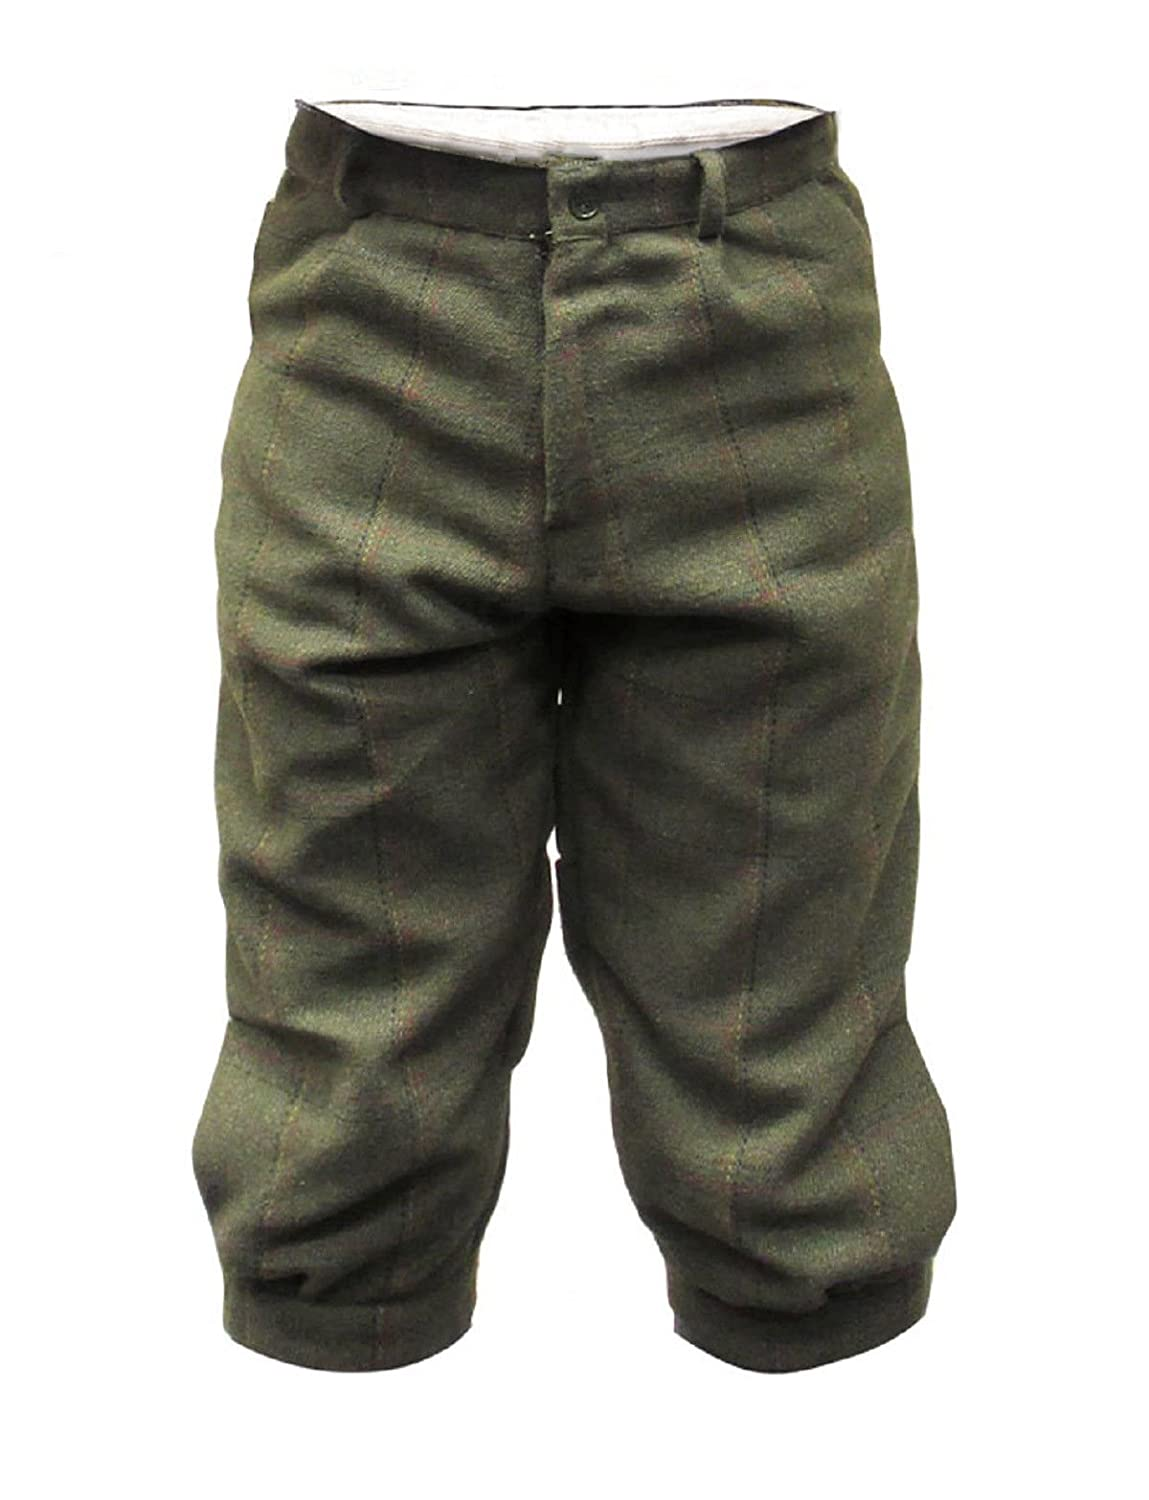 Victorian Men's Pants – Victorian Steampunk Men's Clothing Stormkloth Mens Hereford Tweed Breeks Trousers Breeches Hunting Shooting Fishing Field Farm $49.99 AT vintagedancer.com